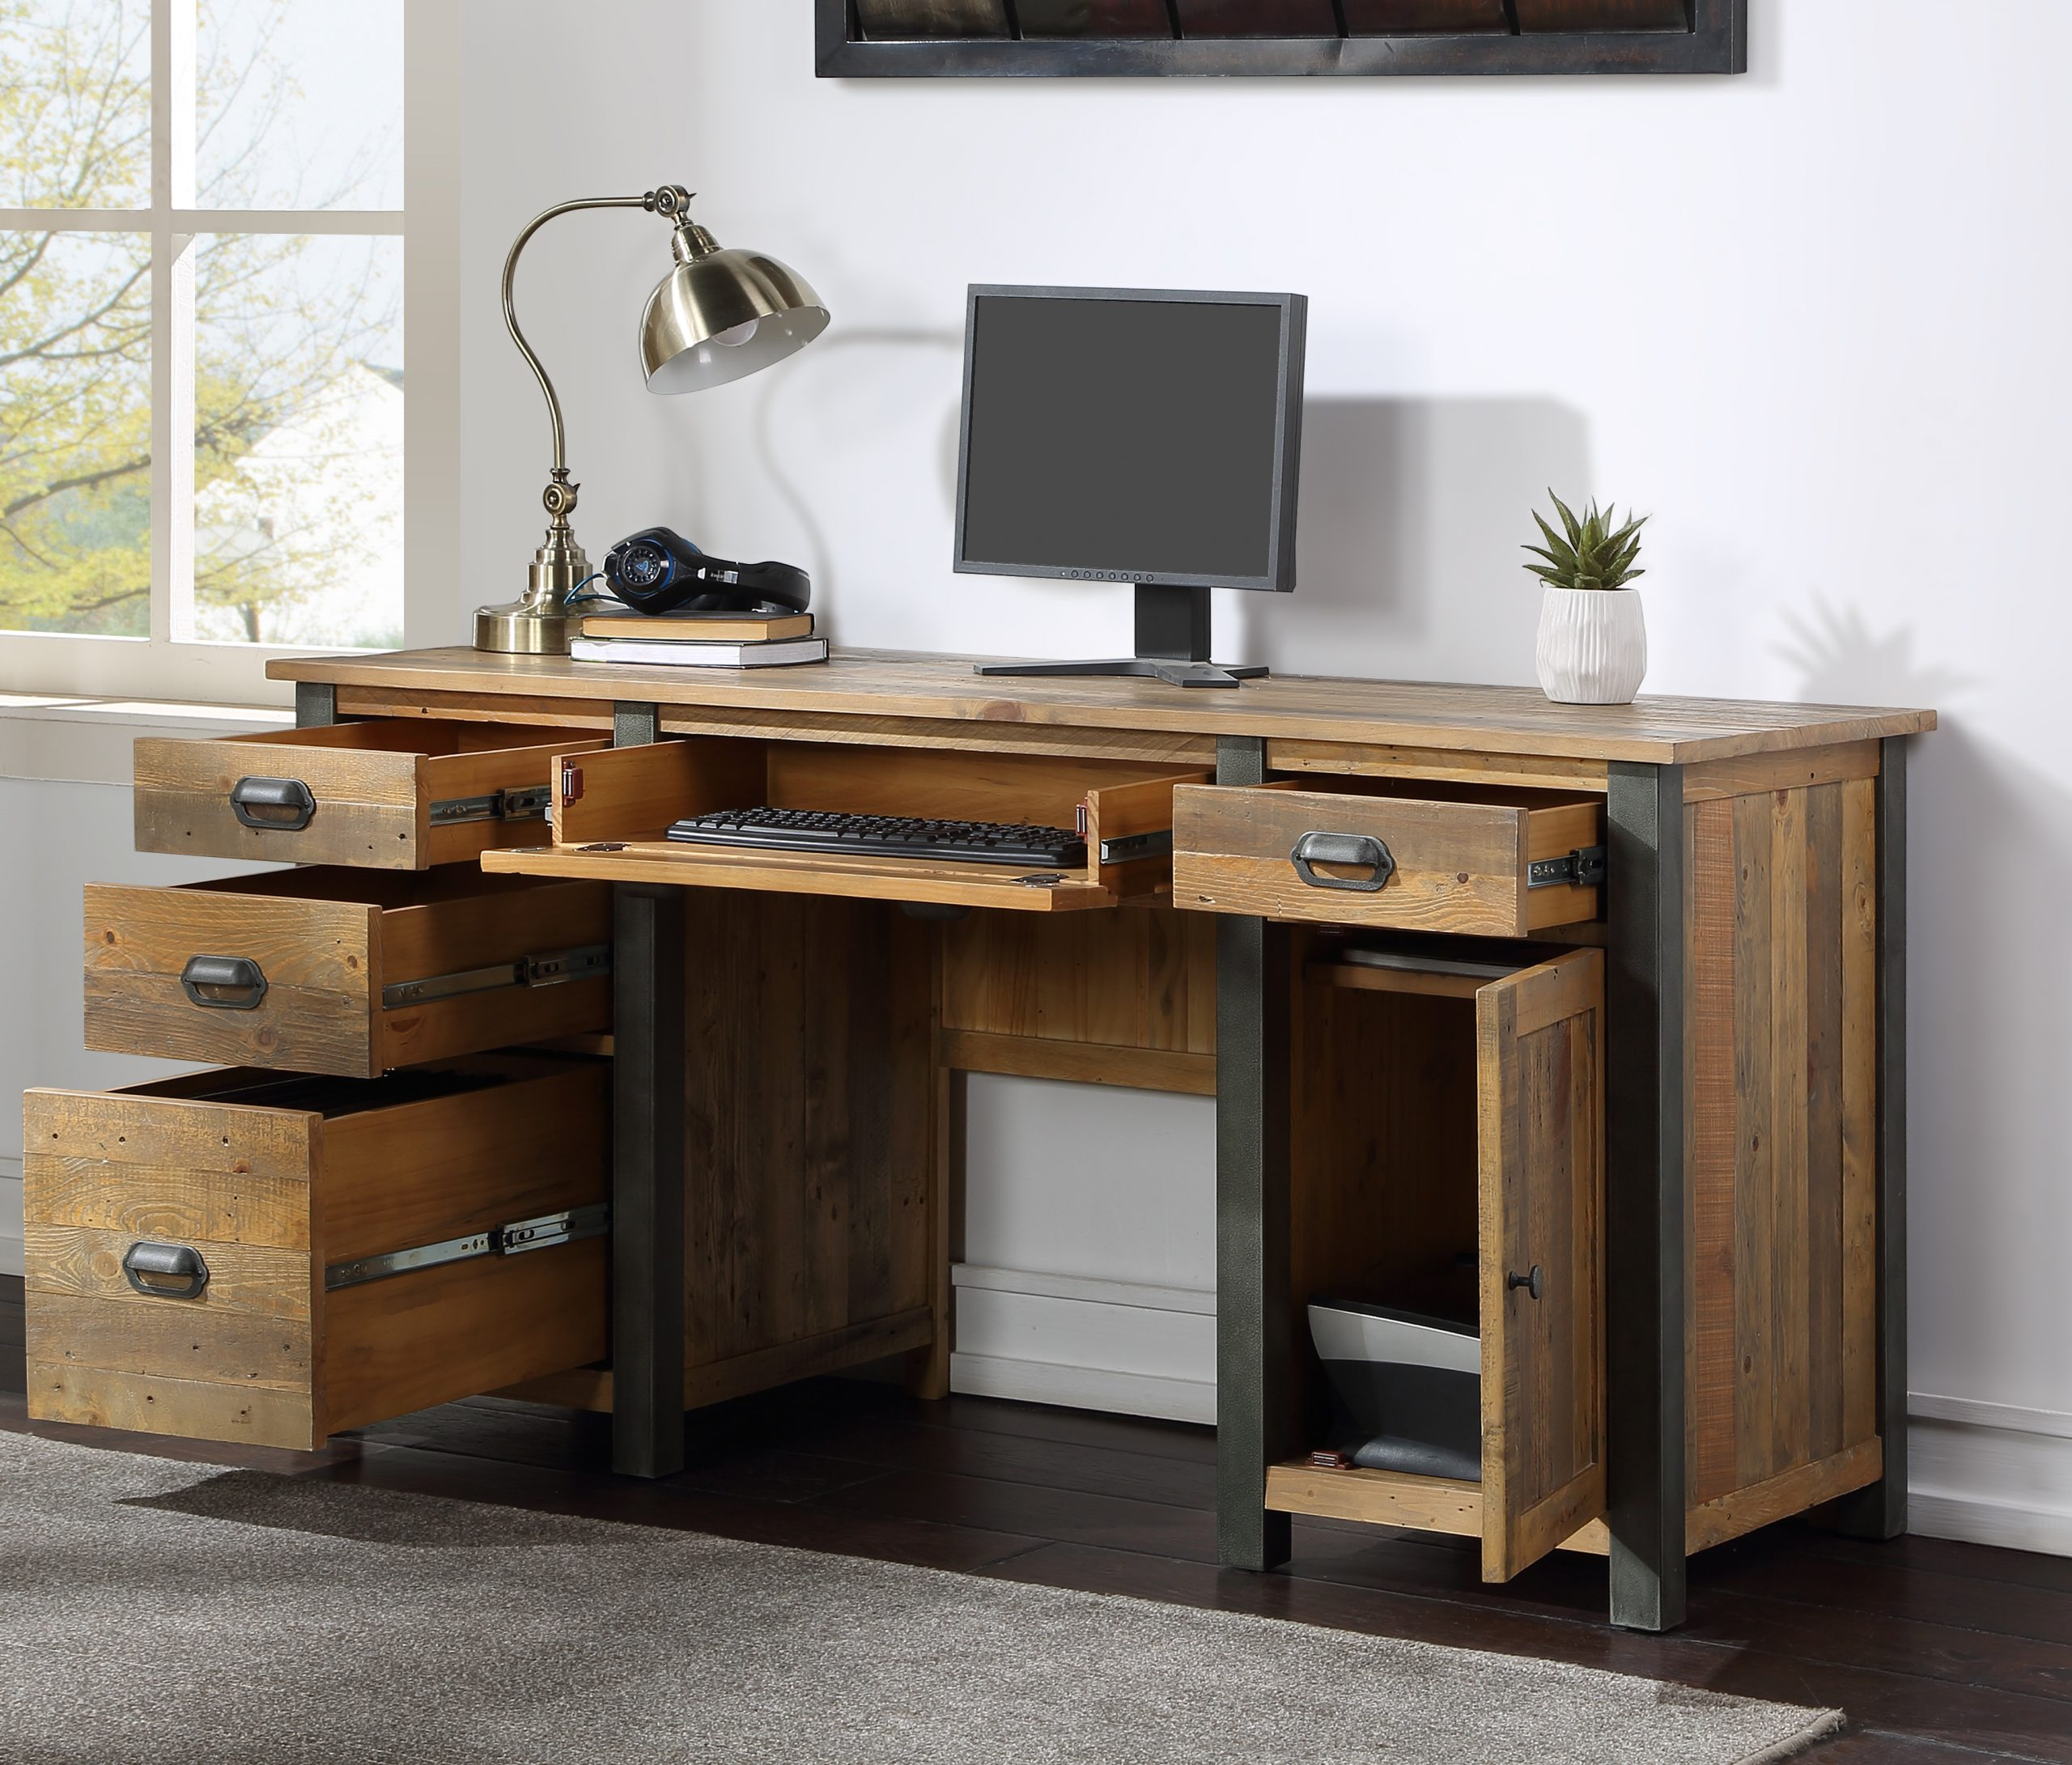 twin pedestal desk with open drawers